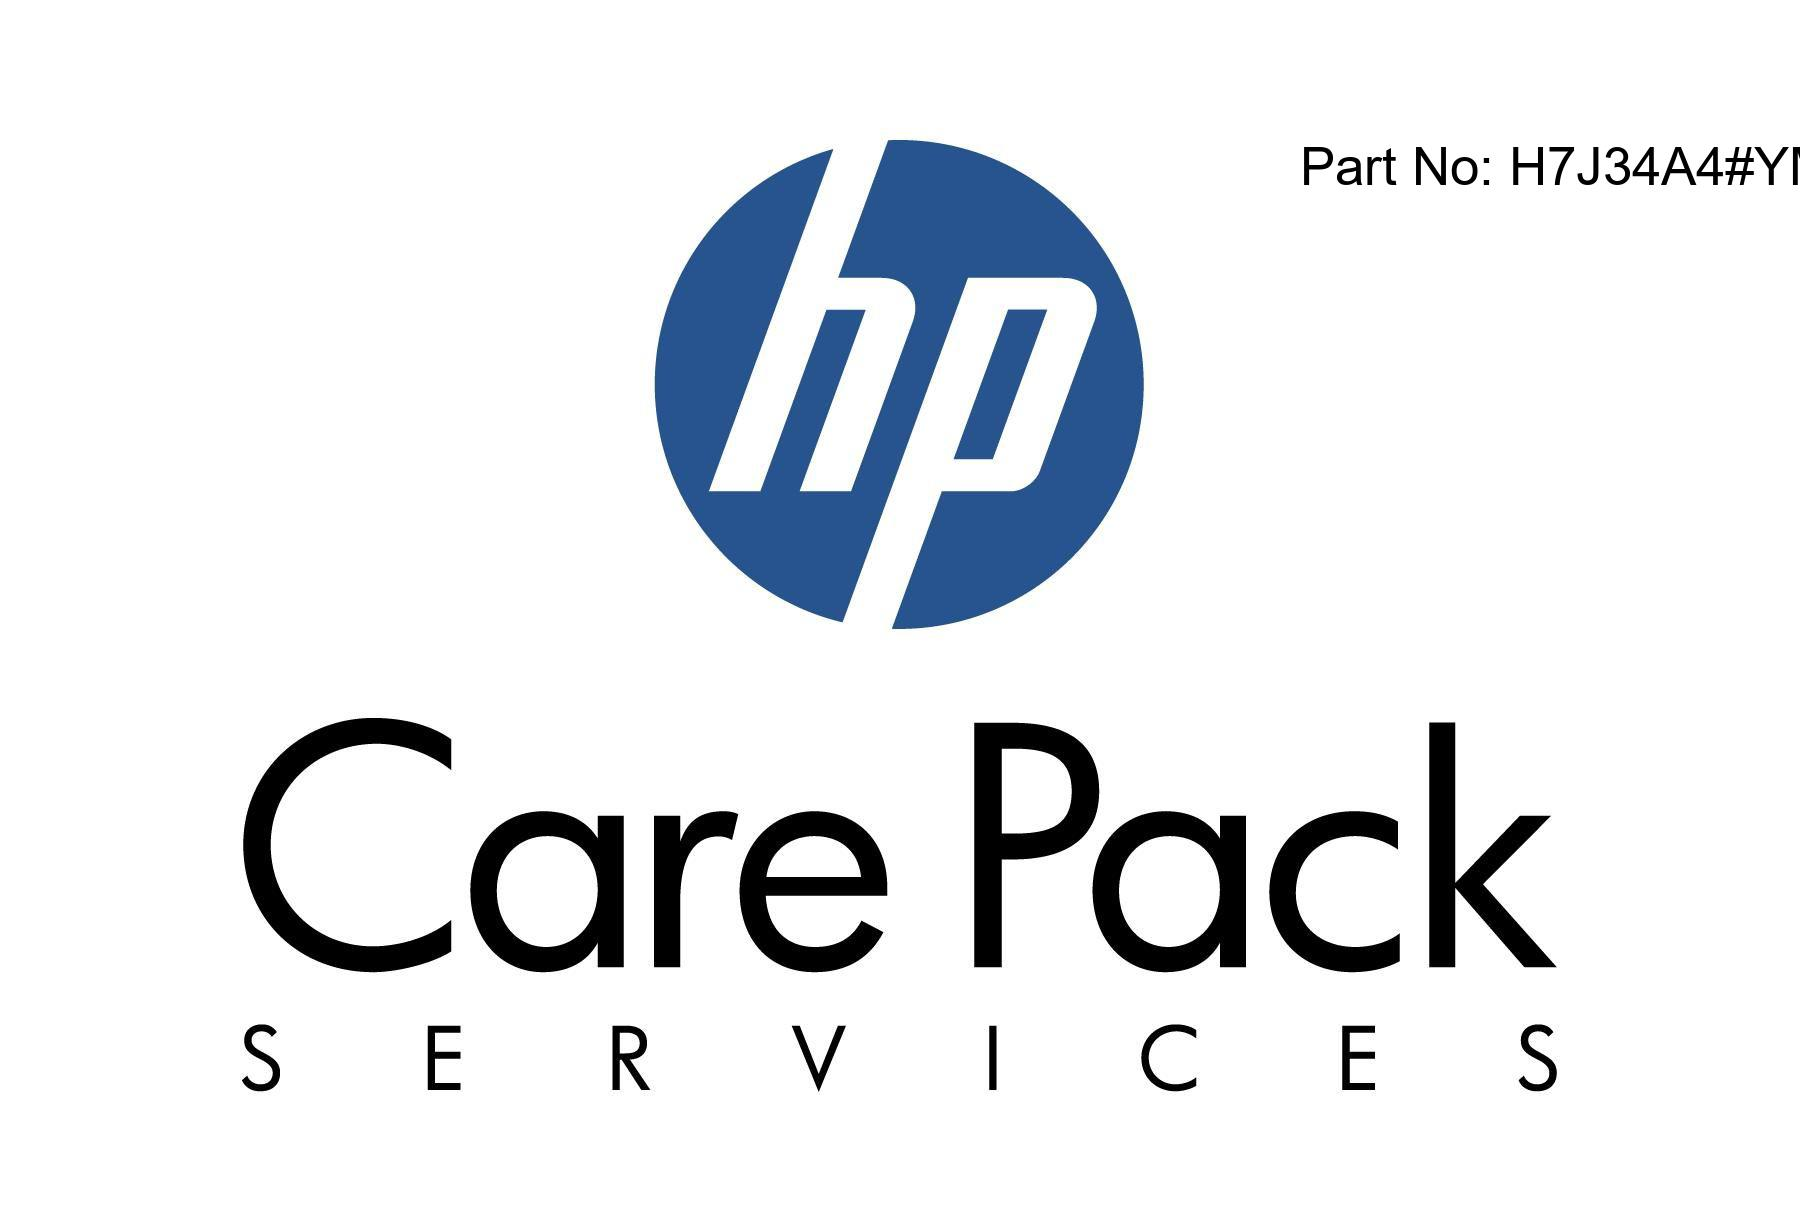 Foundation Care Software Support 24x7 - Technical support - for HPE XP7 High Availability Software to Three Data Center High Availability - 1 TB capacity - 500+ TB - phone consulting - 4 years - 24x7 - response time: 2 h